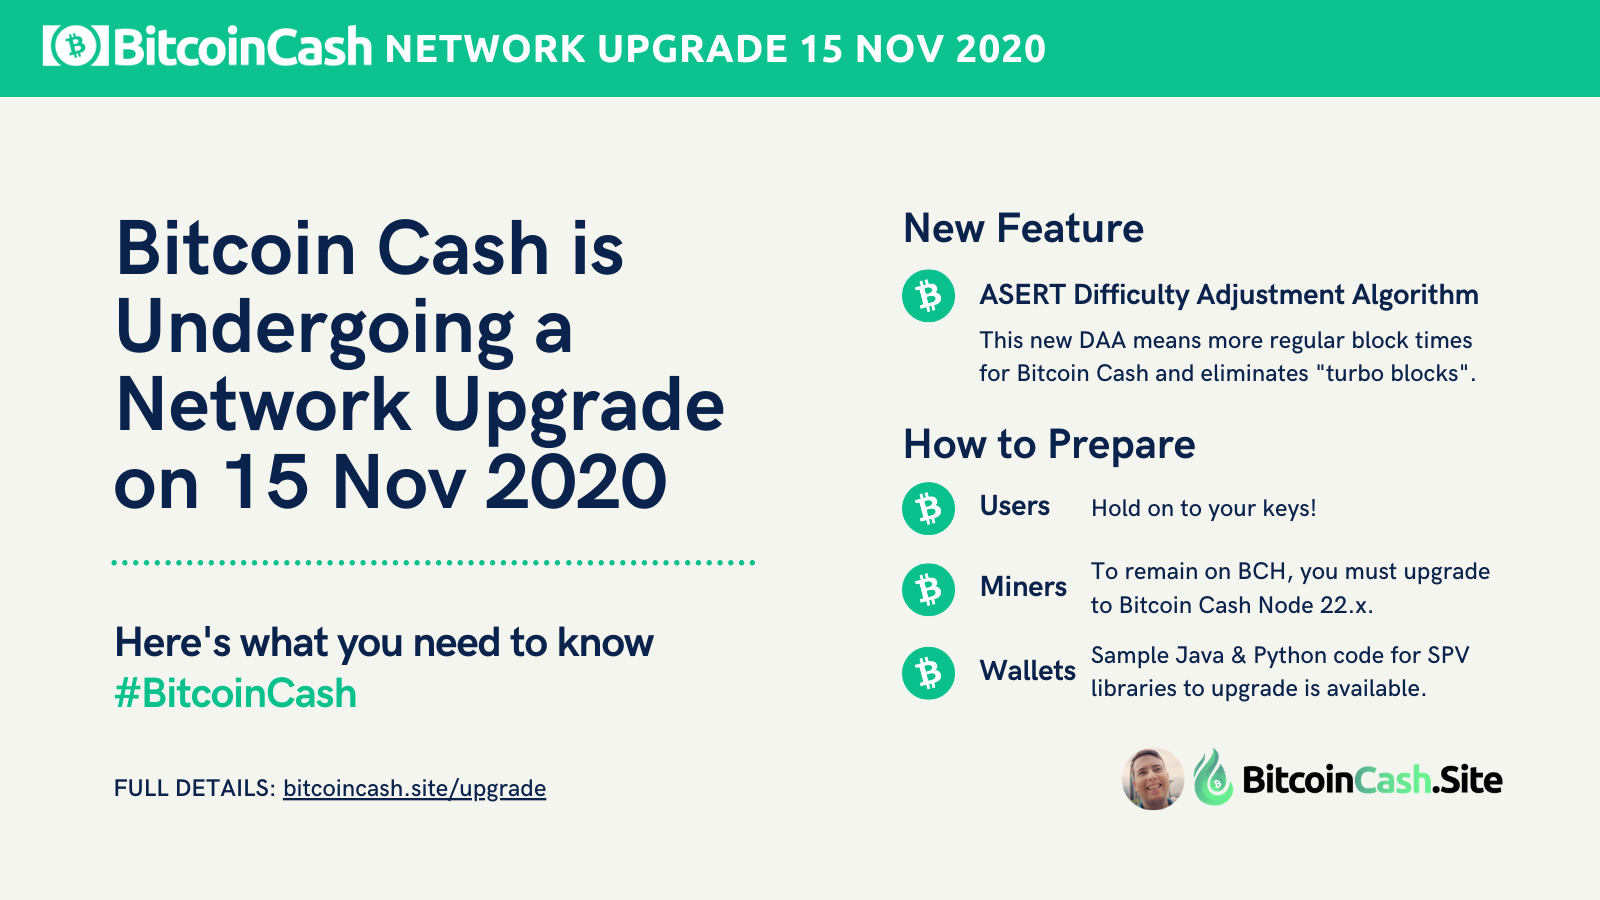 Here's what you need to be prepared for the Bitcoin Cash Network Upgrade on 15 Nov 2020